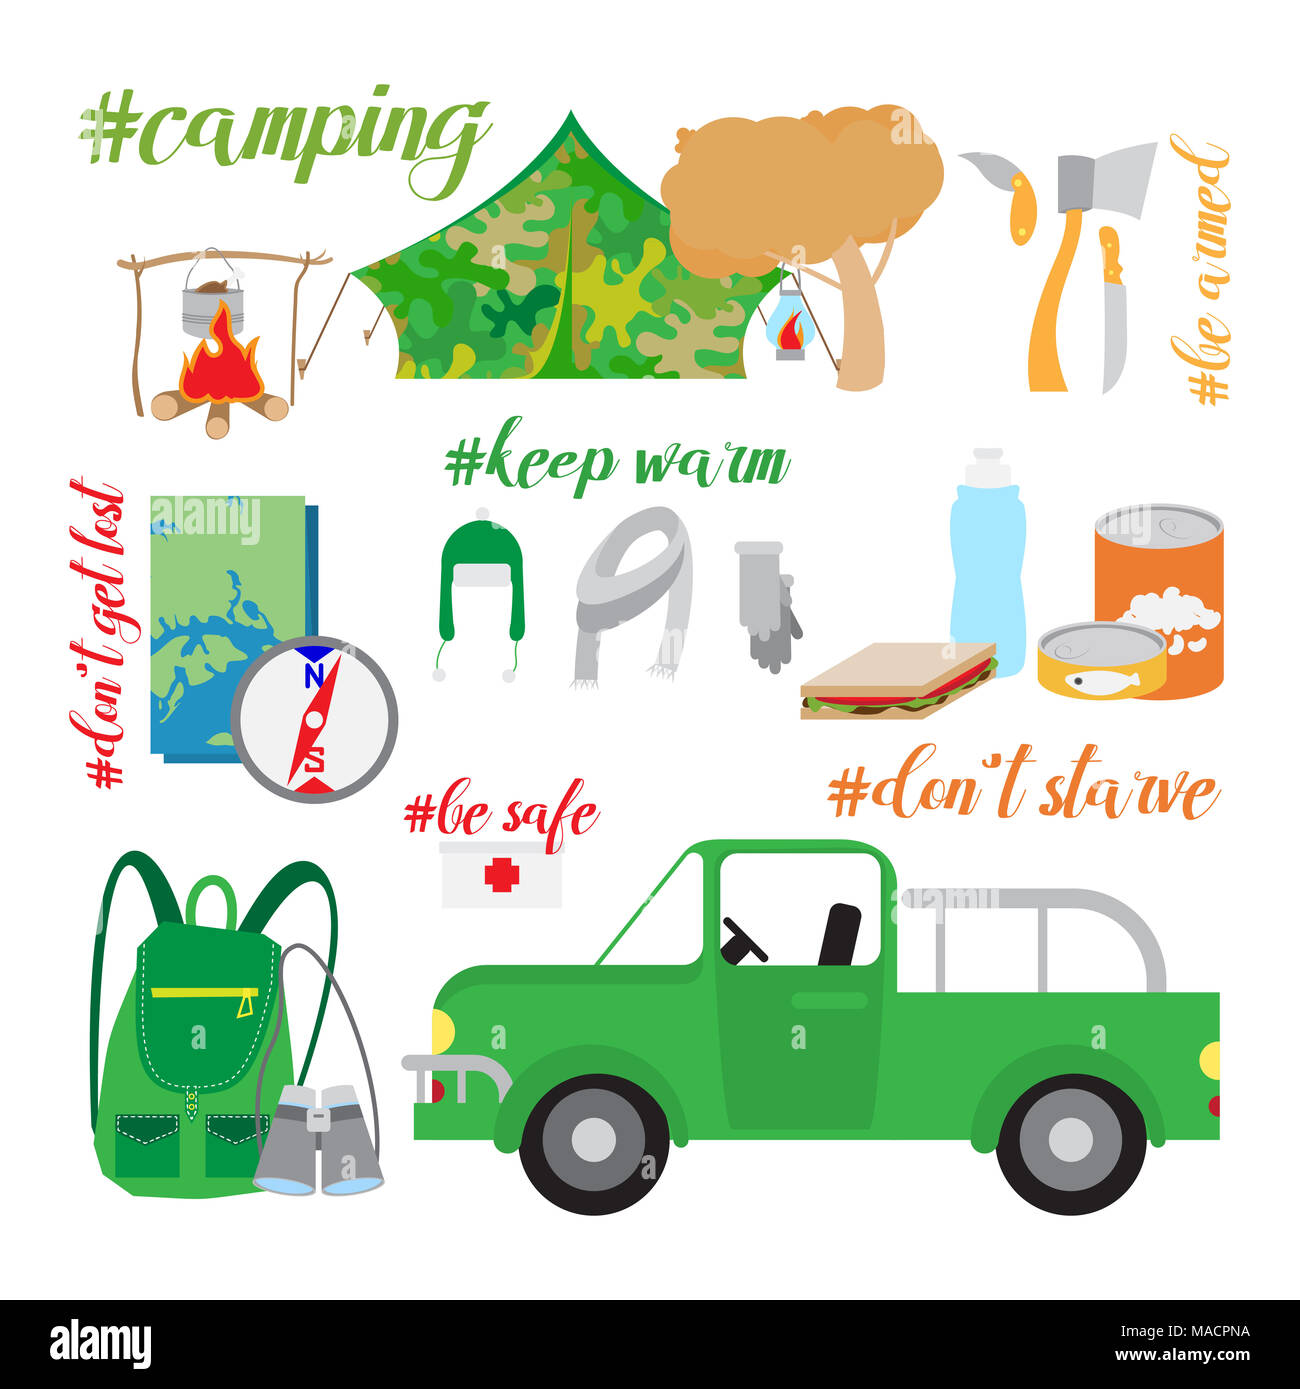 tourism and camping icons detailed vector set - Stock Image